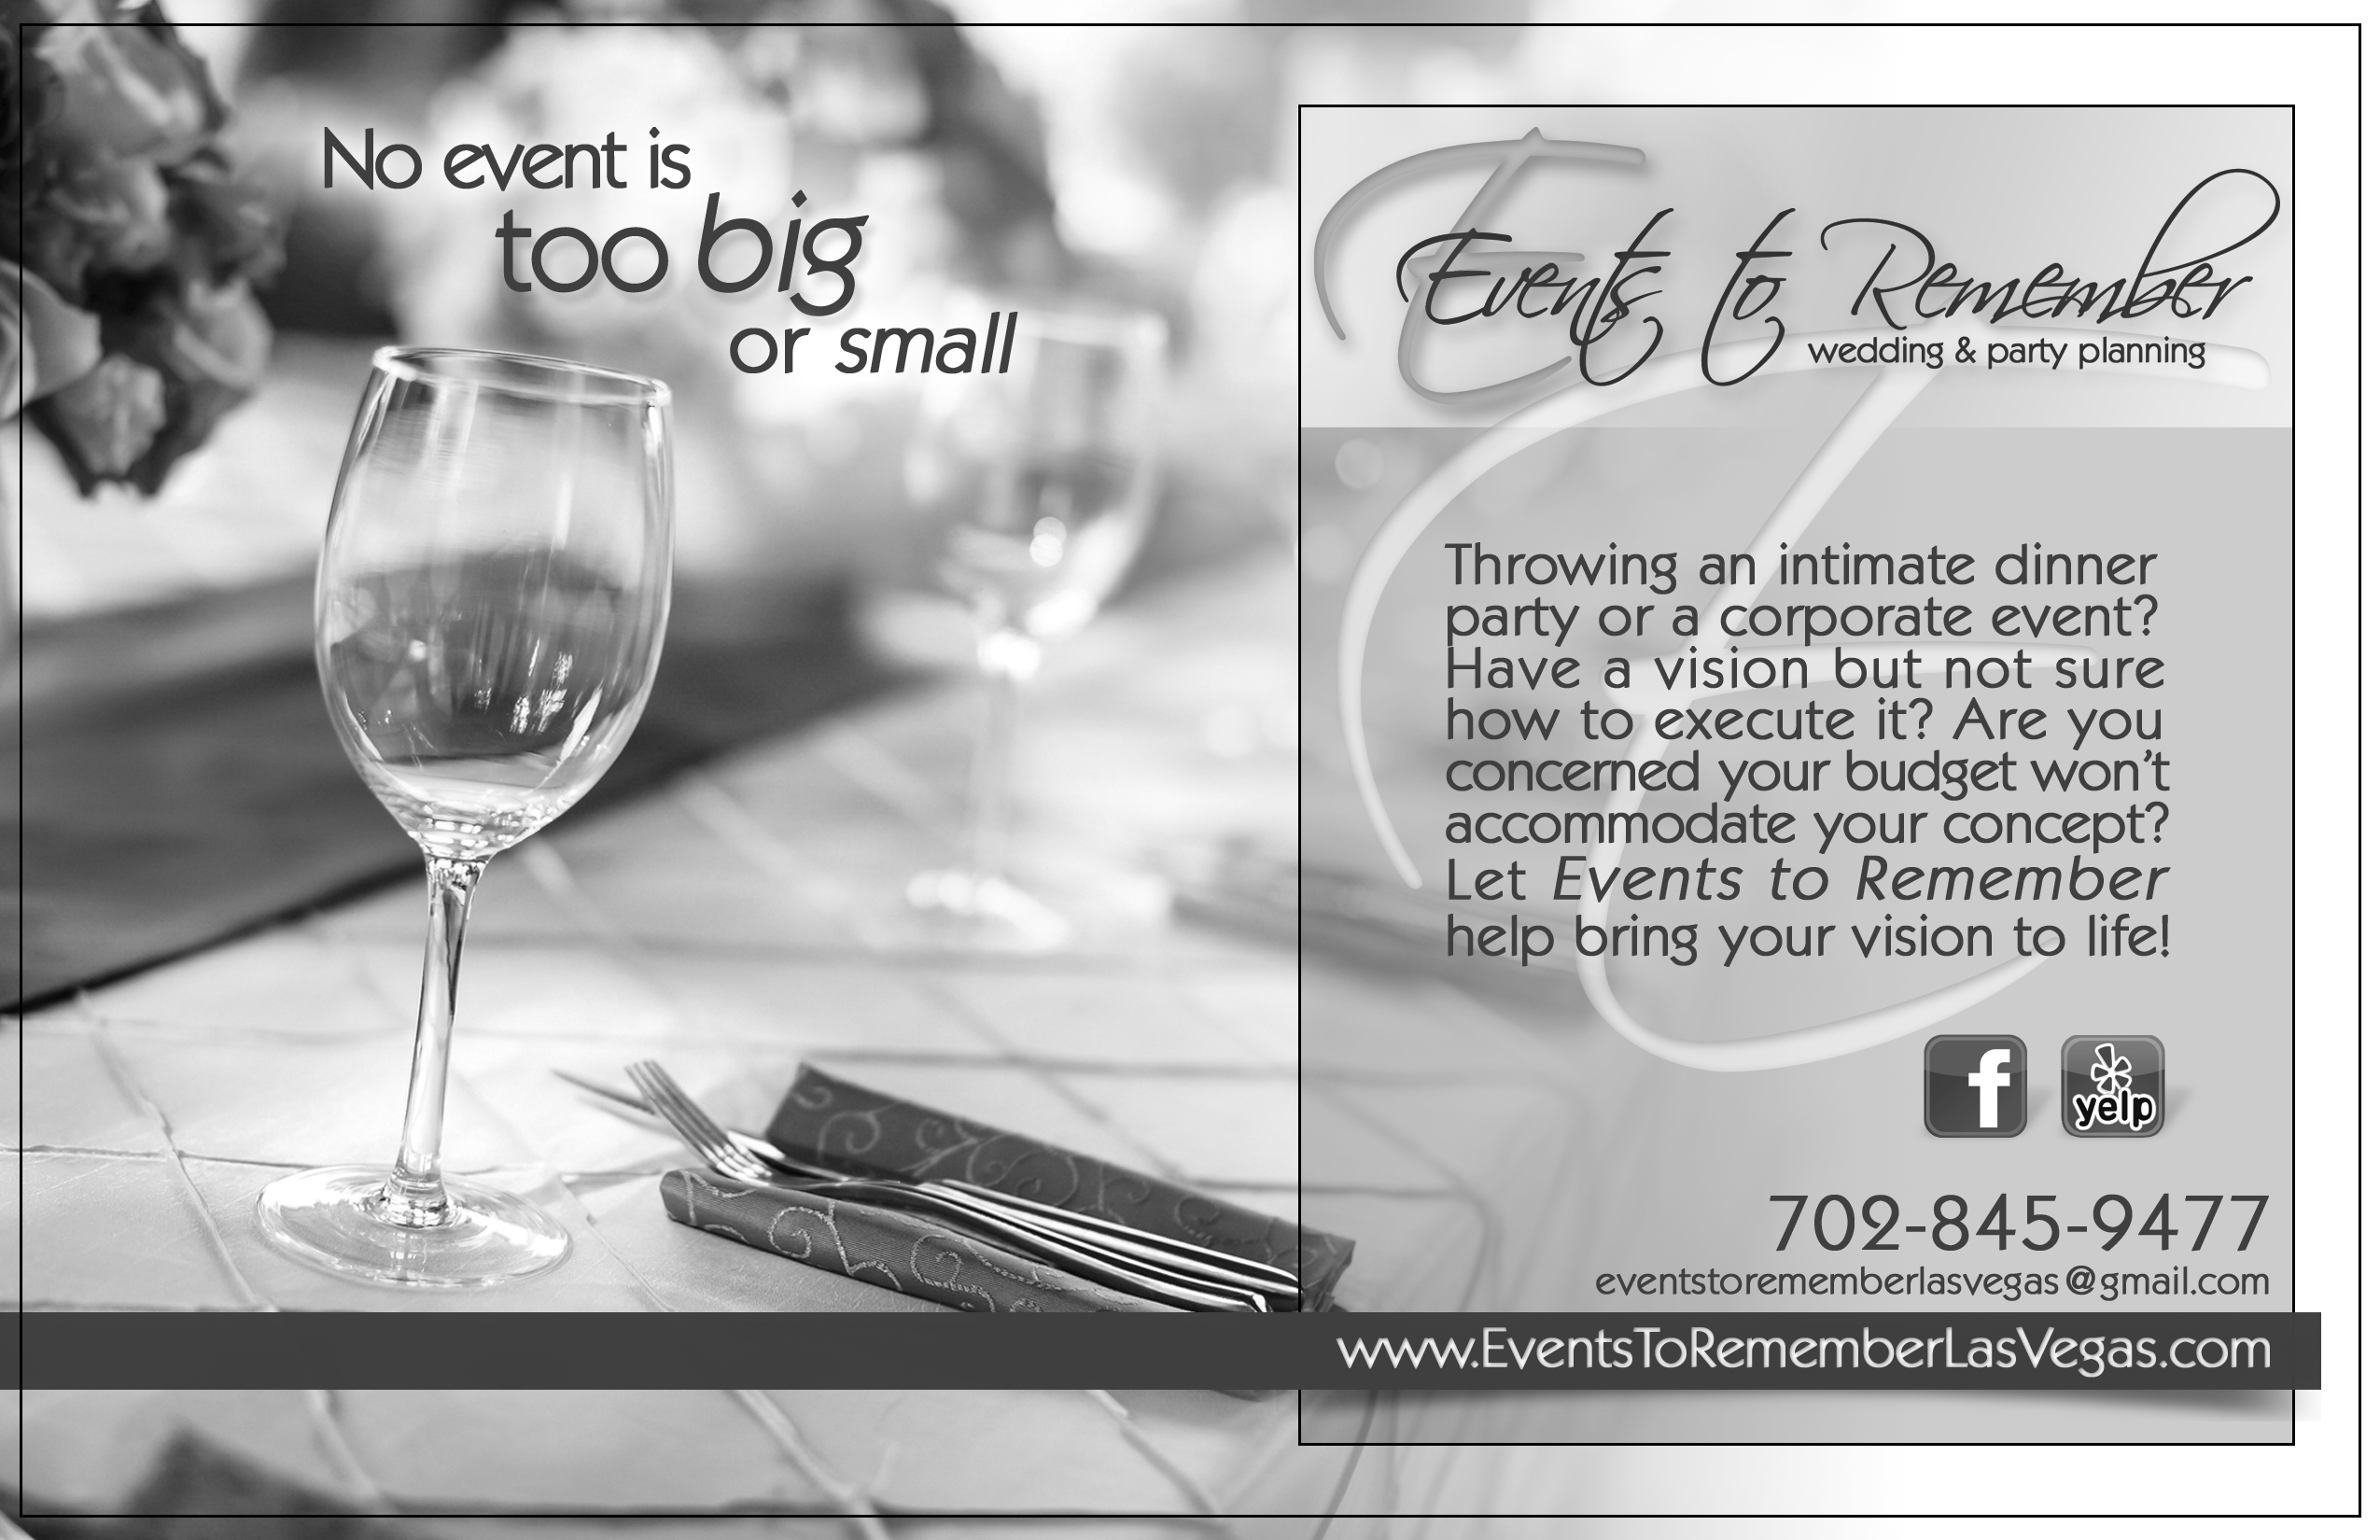 events-to-remember-magazine-ad